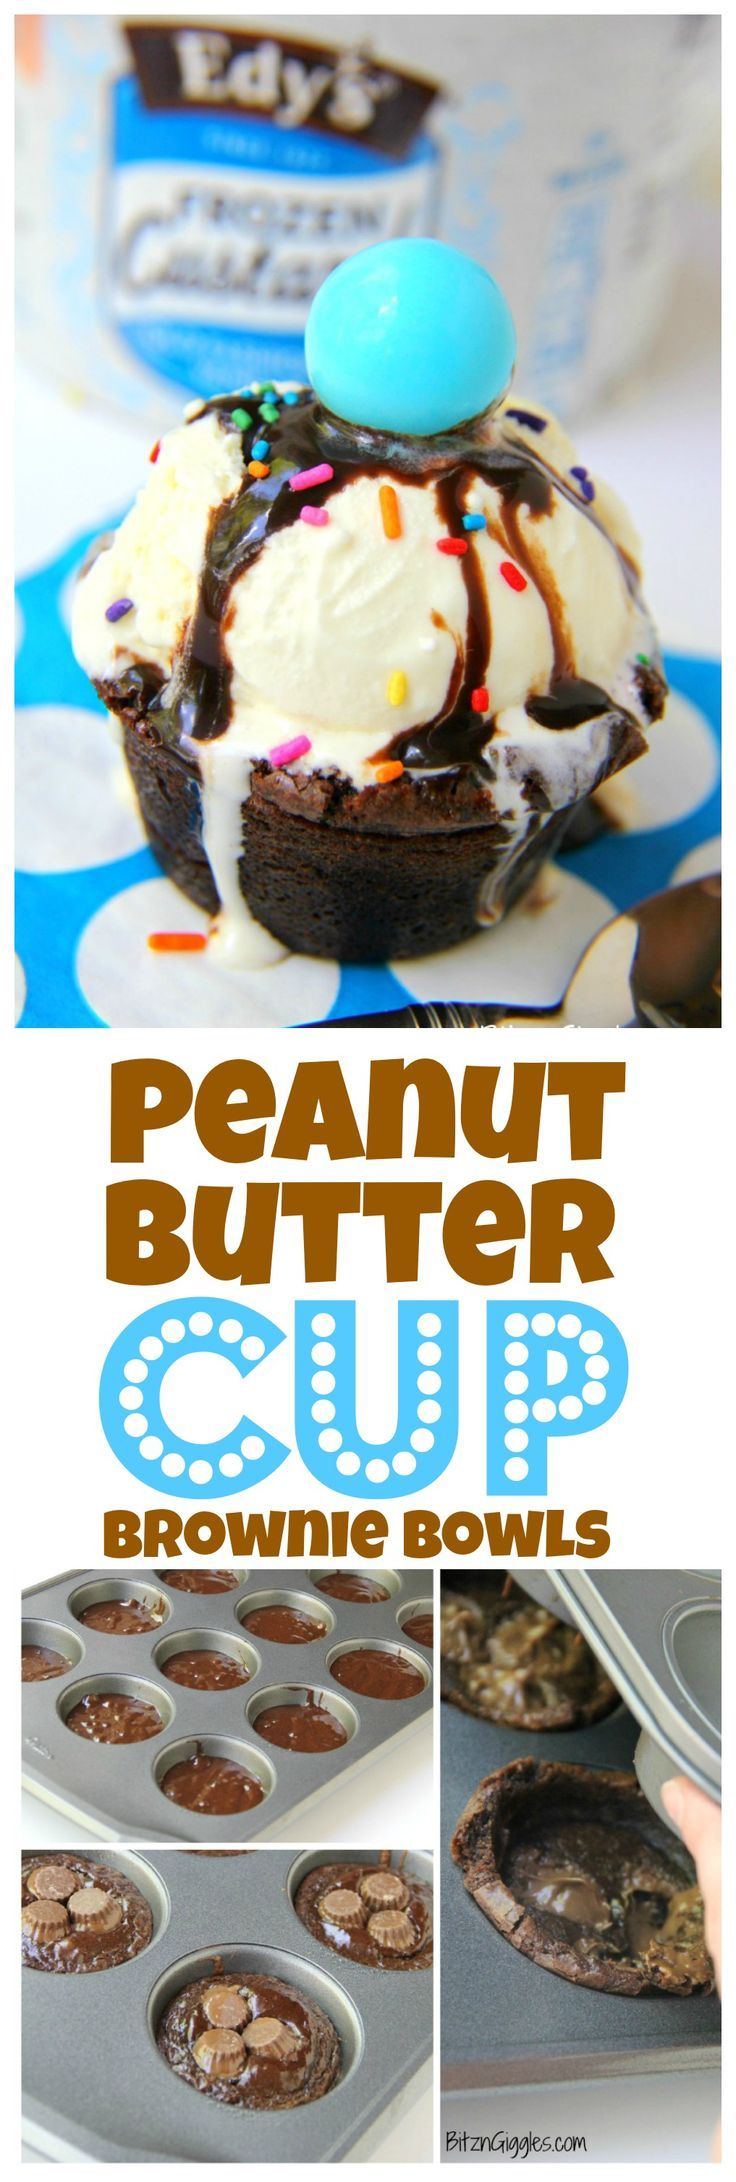 Peanut Butter Cup Brownie Bowls - A peanut butter cup infused brownie ...